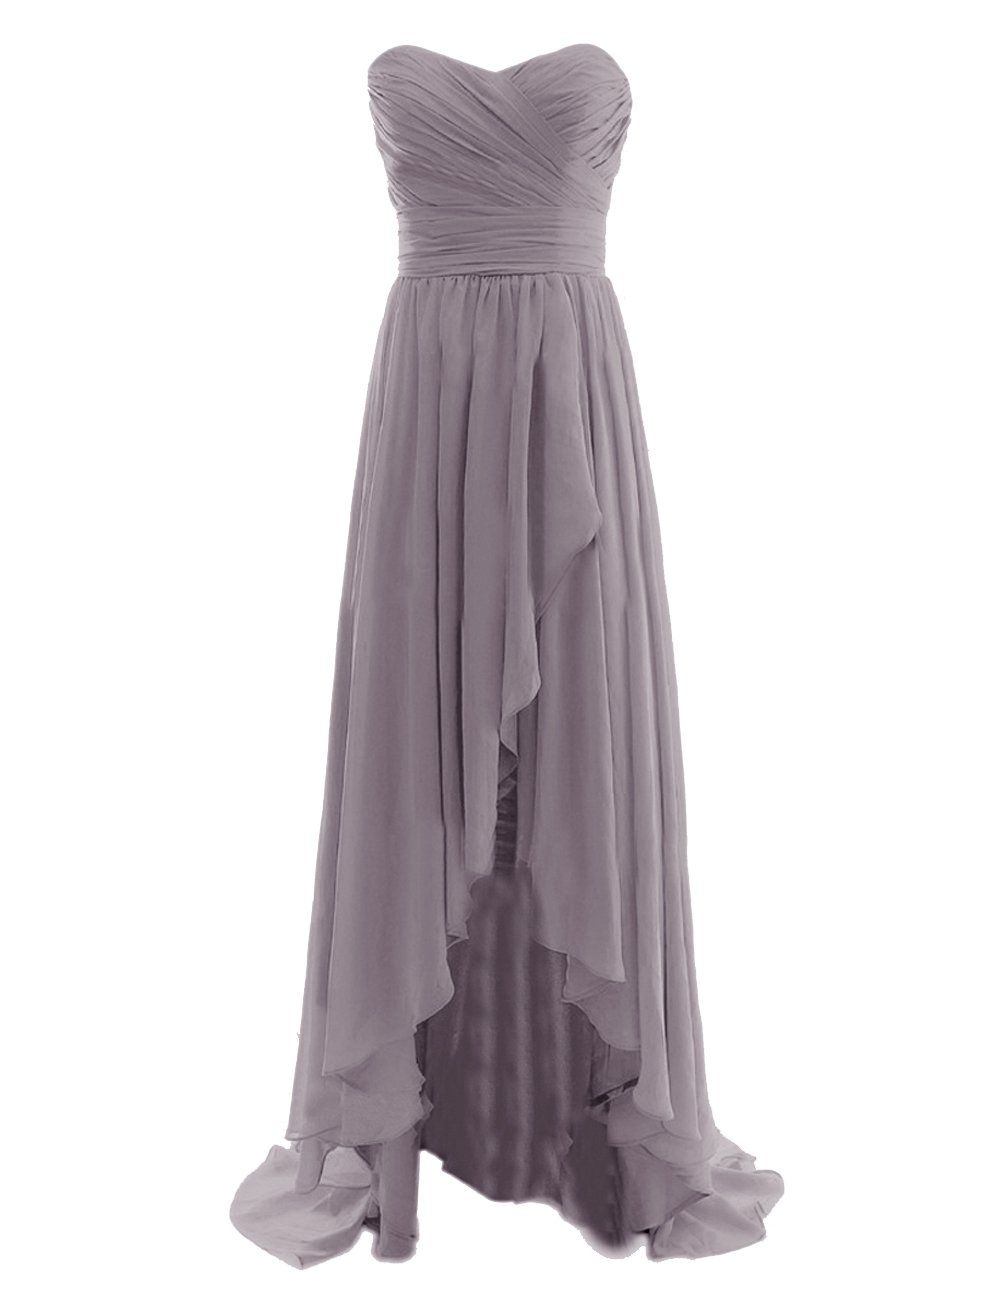 Wedding dresses oahu  Diyouth Long High Low Bridesmaid Dresses Sweetheart Formal Evening